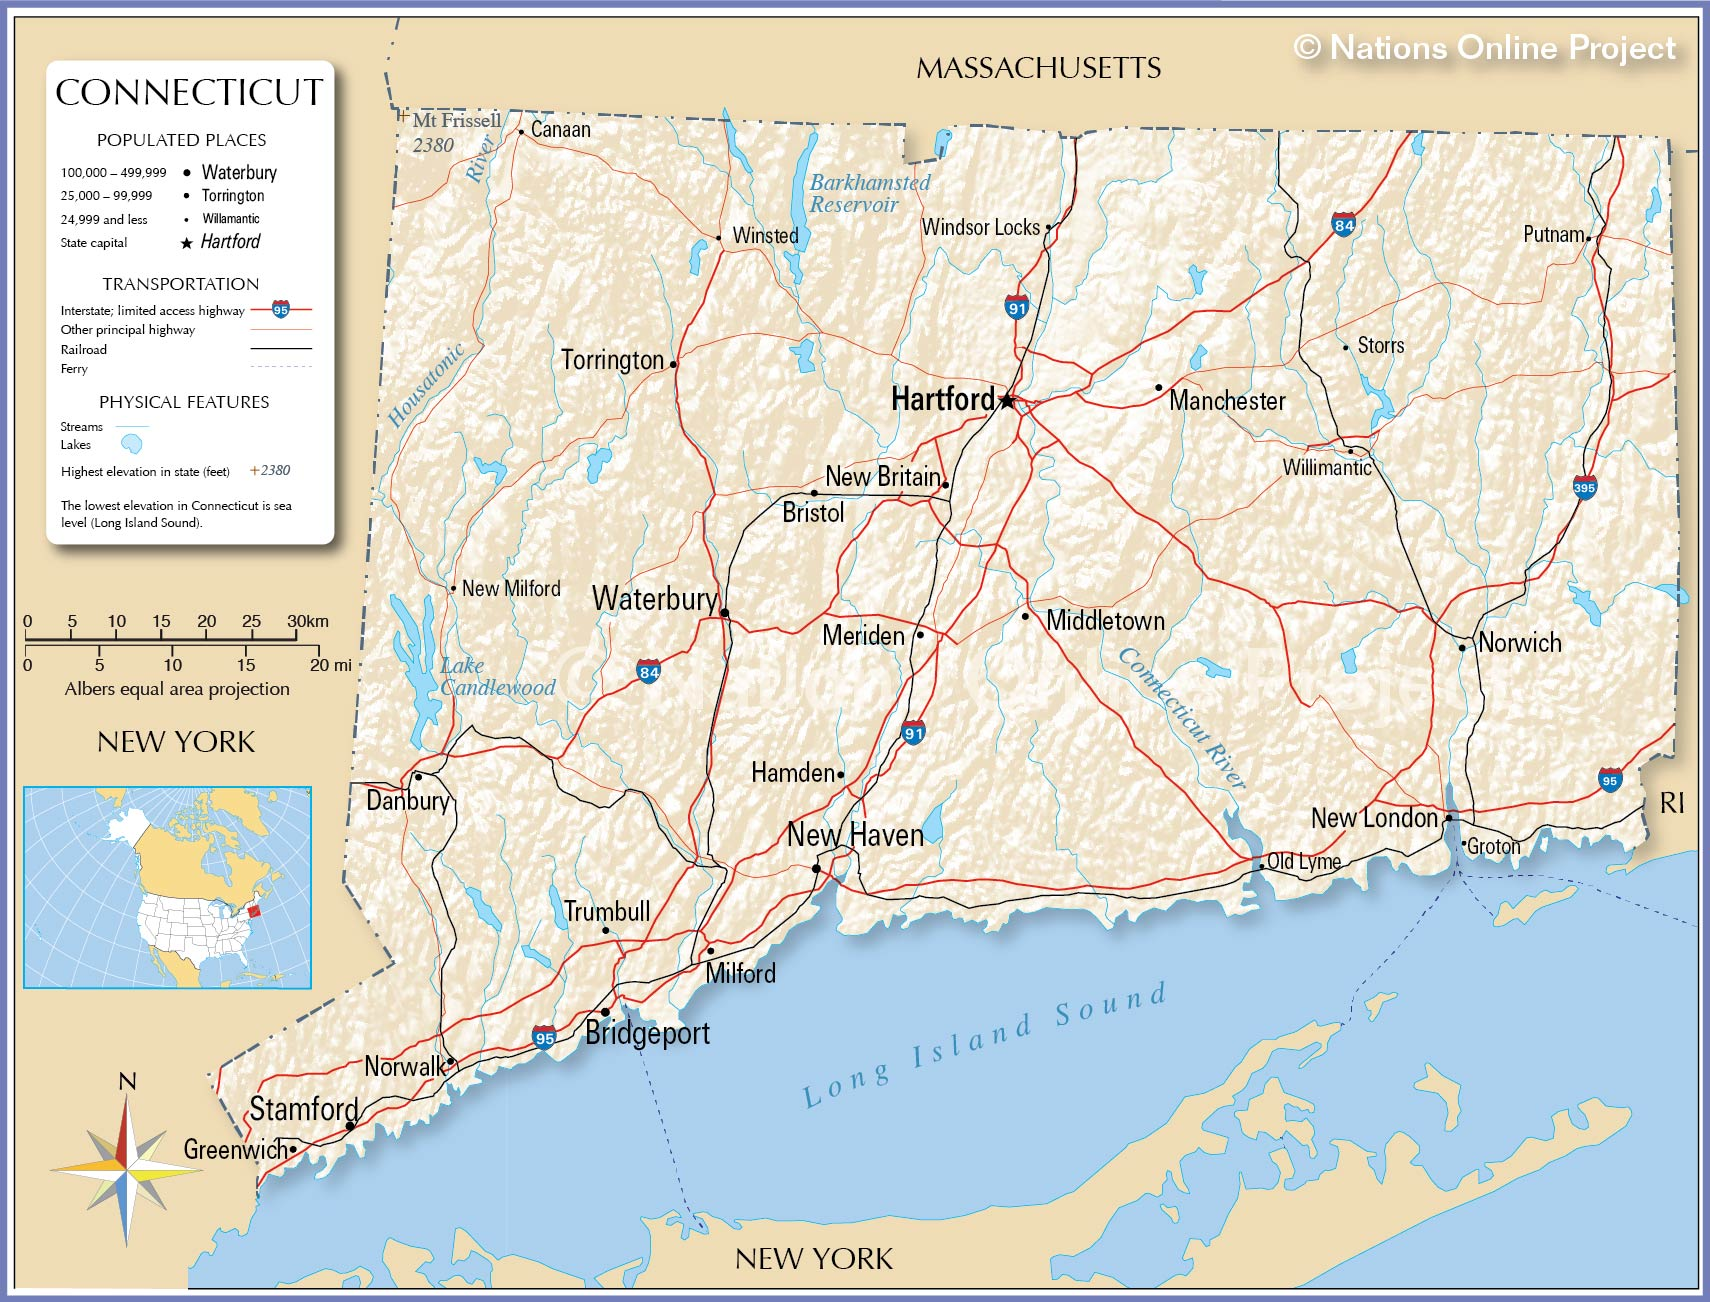 Reference Maps of Connecticut, USA - Nations Online Project